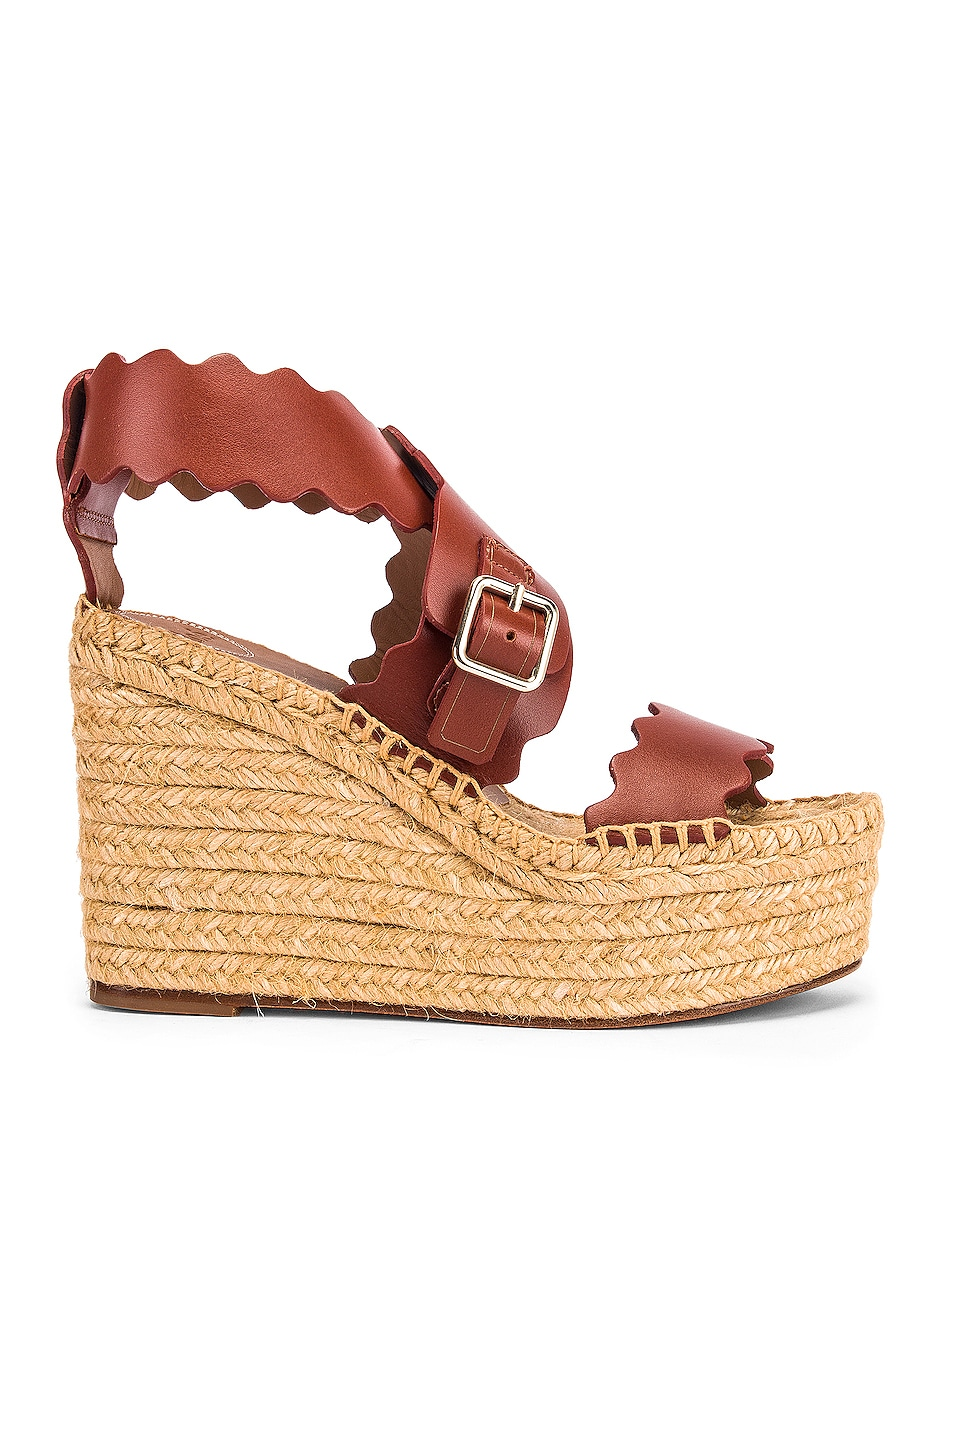 Image 1 of Chloe Leather Wedges in Sepia Brown